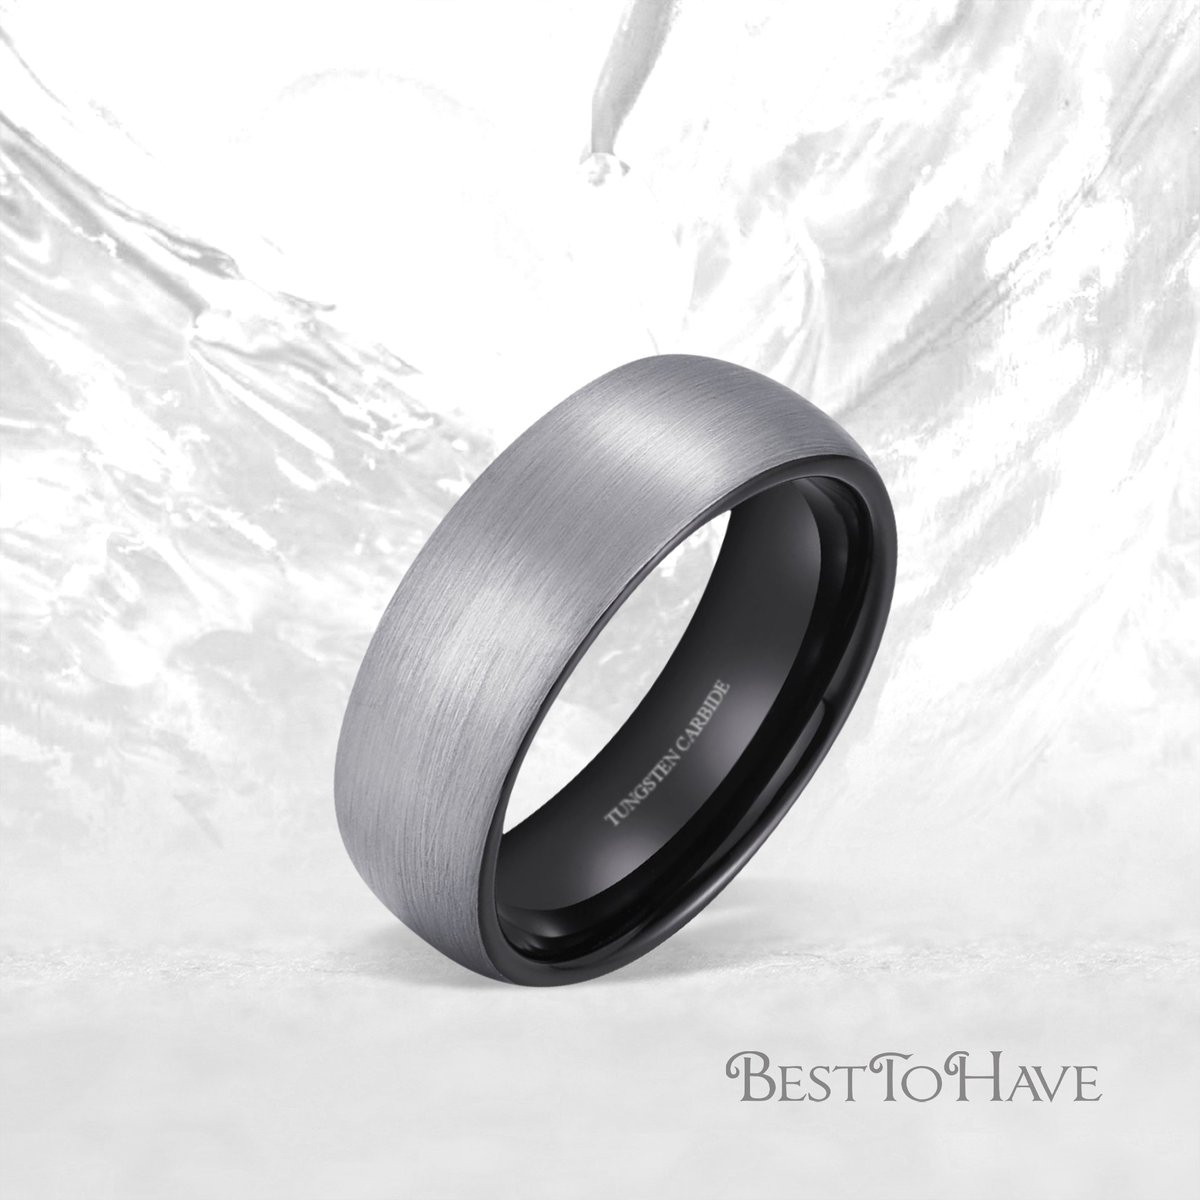 Brushed Tungsten Wedding Engagement Ring With Black Interior Code: 408 £29.99 Shop more:  #besttohave #besttohavejewelry #besttohaverings #wedding #engagement #weddingrings #weddinginspiration #tungsten #tungstenrings #tungstenjewelry #jewelry #jewellery